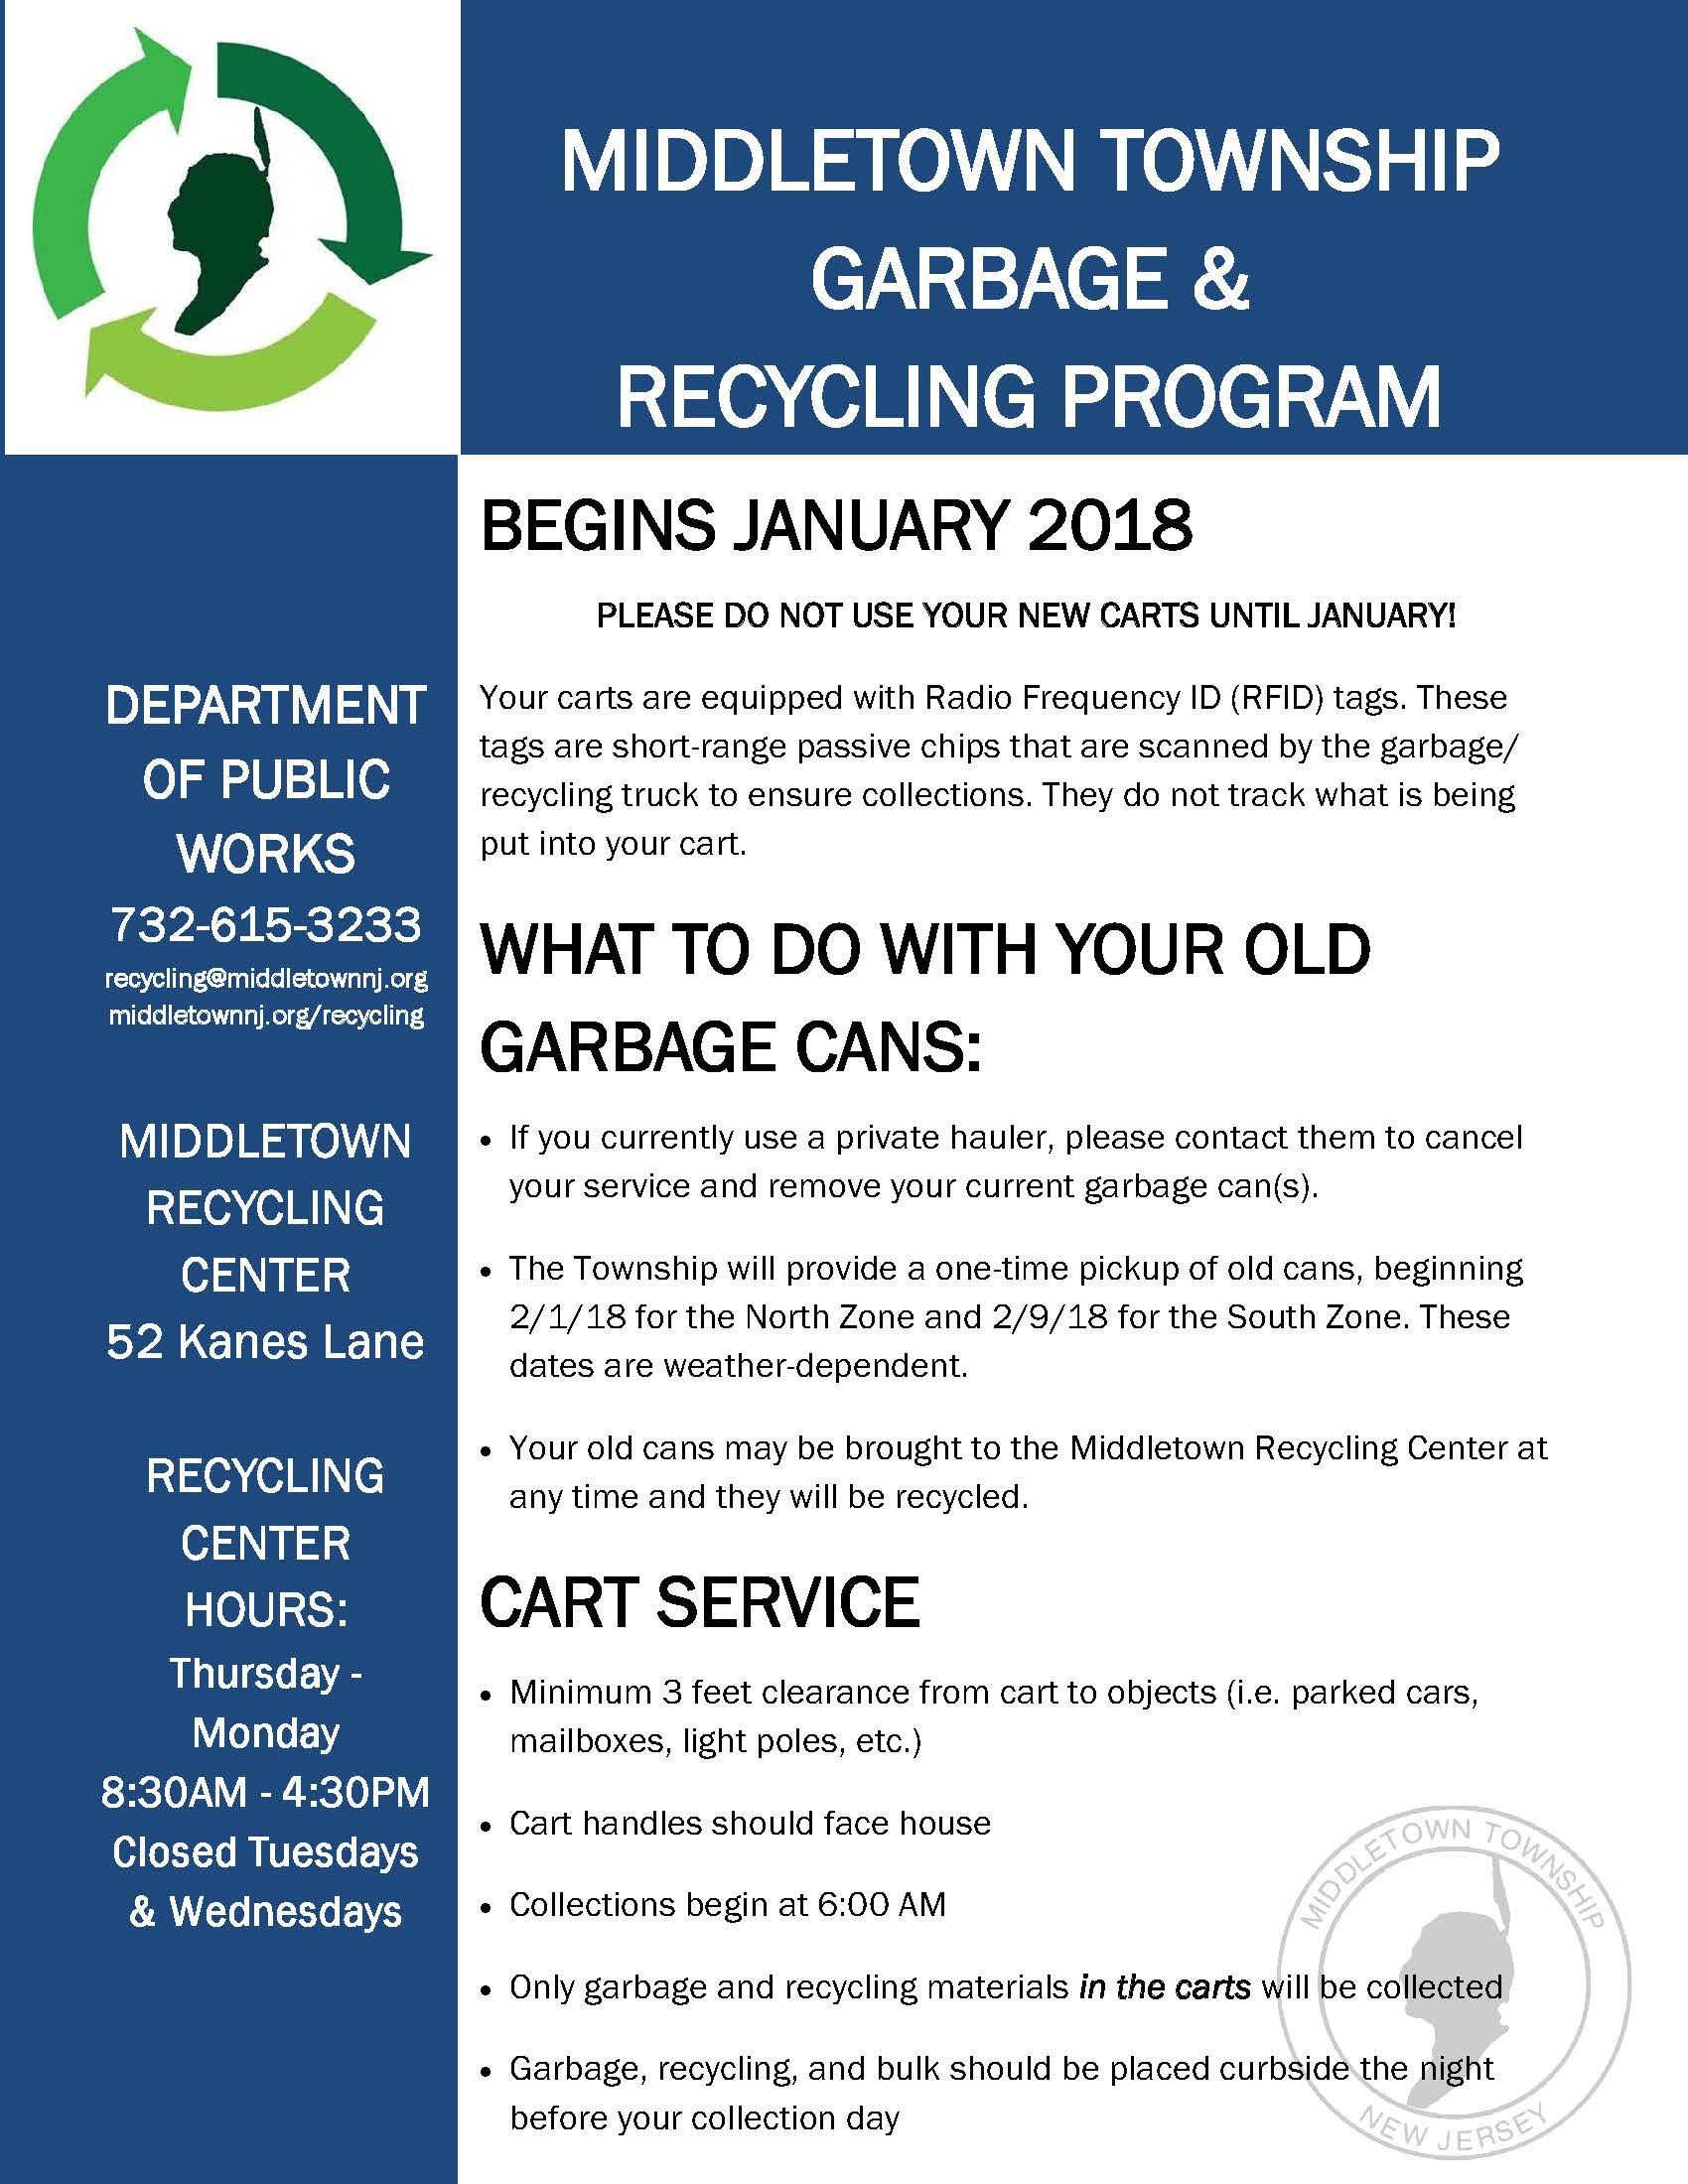 Middletown Garbage Information Flyer 2 (JPEG)